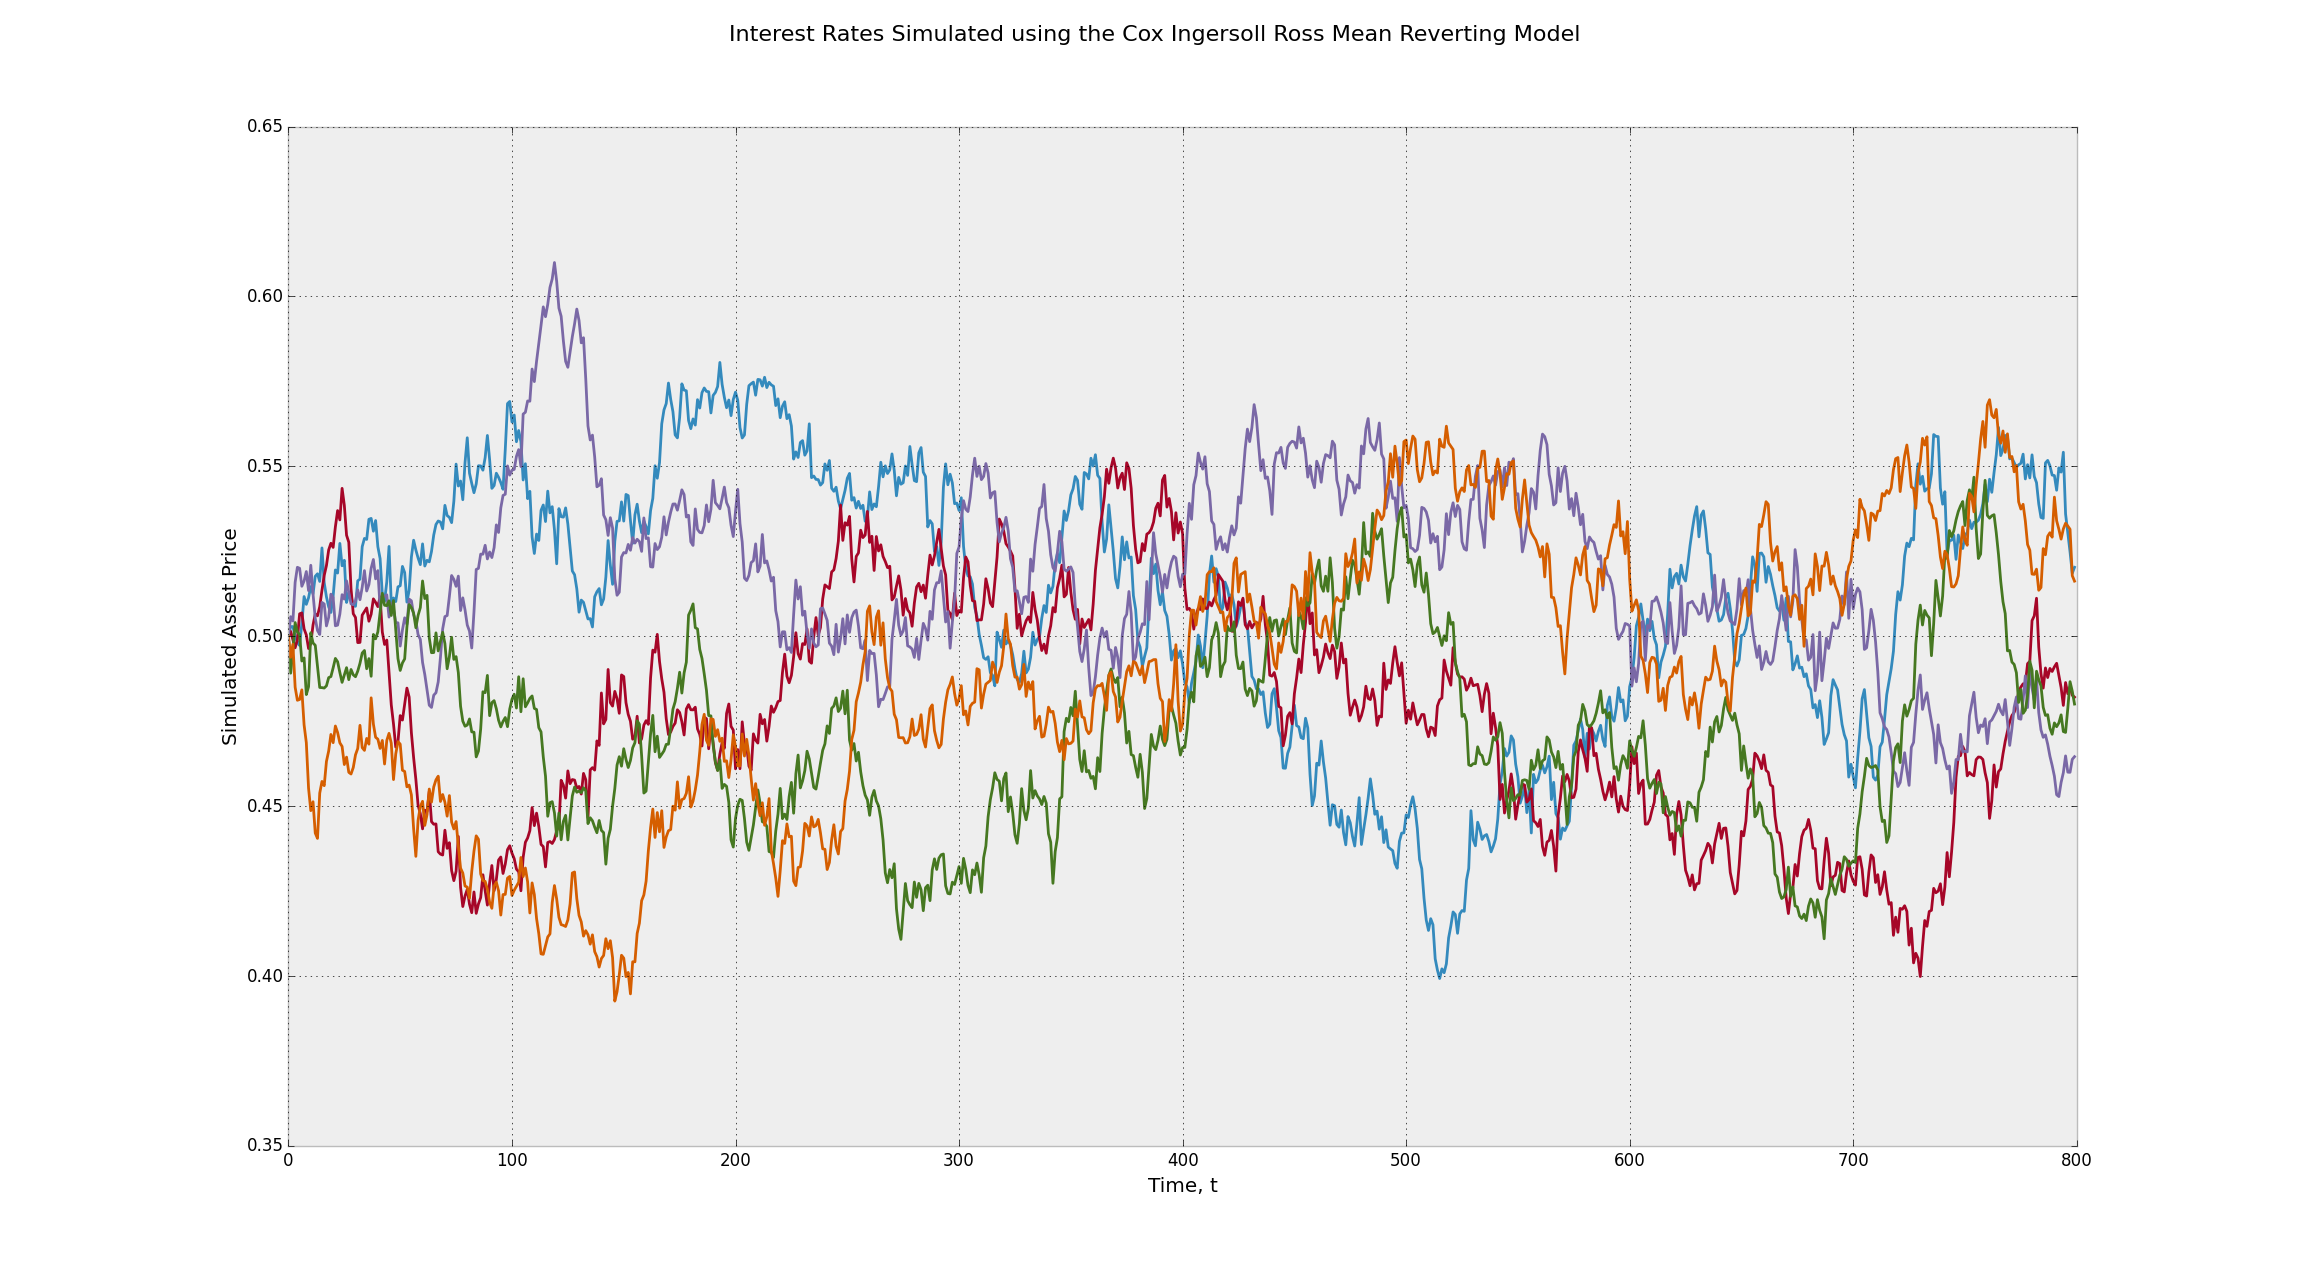 Interest Rates Simulated using the Cox Ingersoll Ross Mean Reverting Stochastic Process